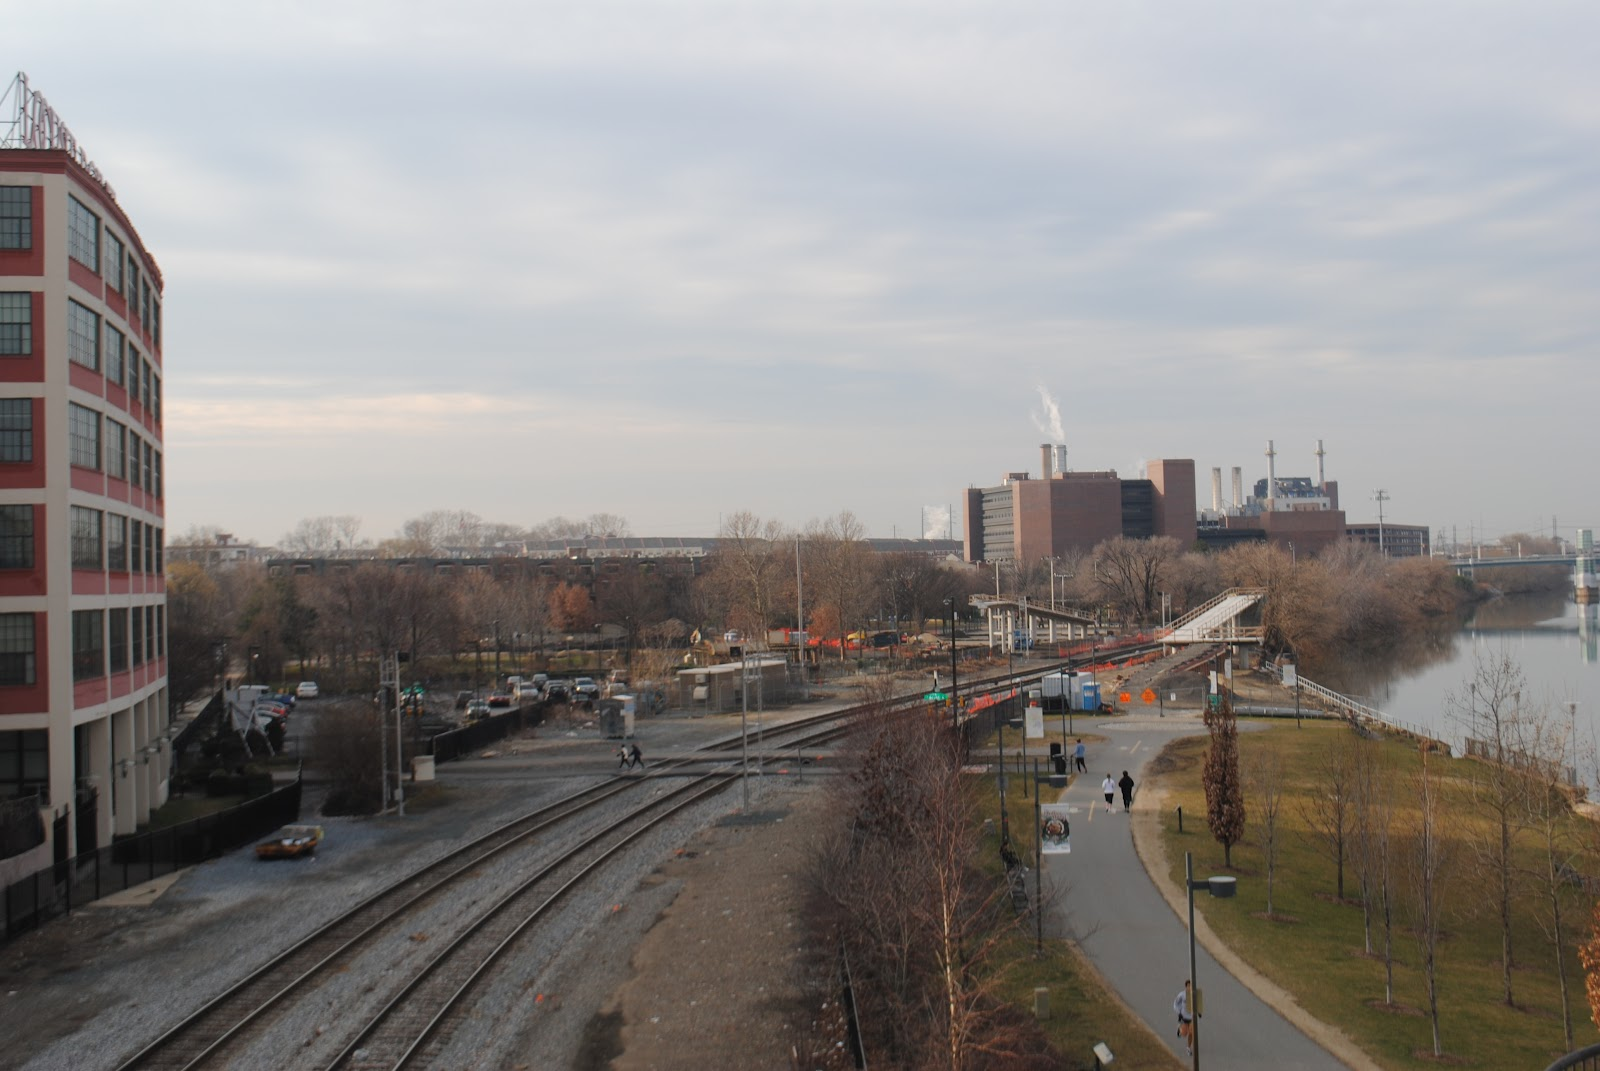 Construction on the Connector Bridge. February 2012 | Bicycle Coalition of Greater Philadelphia